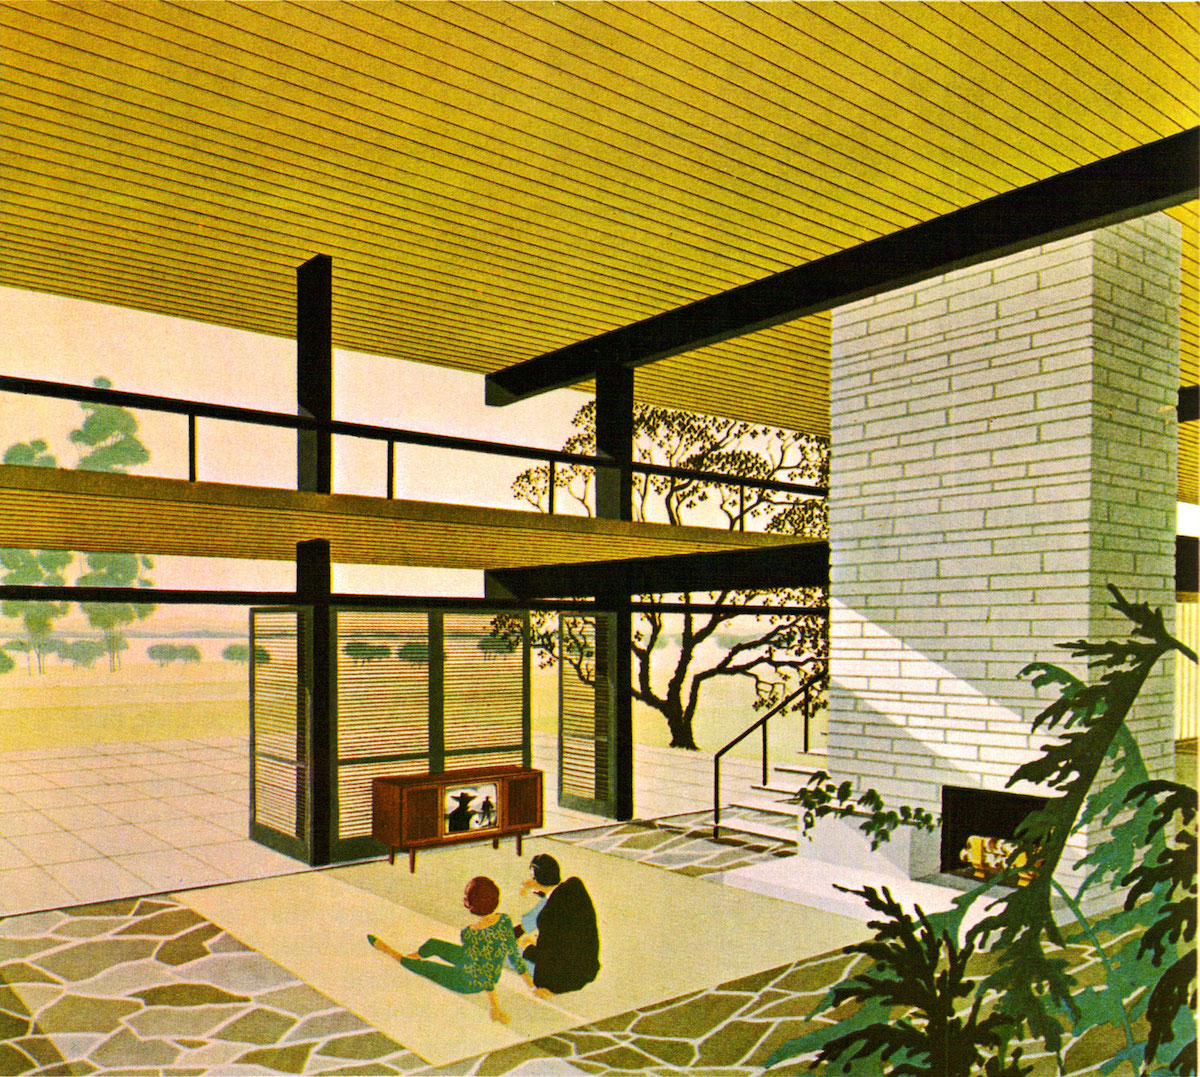 The House of the Future. Motorola advertisements from the early 1960s, illustrated by Charles Schridde.